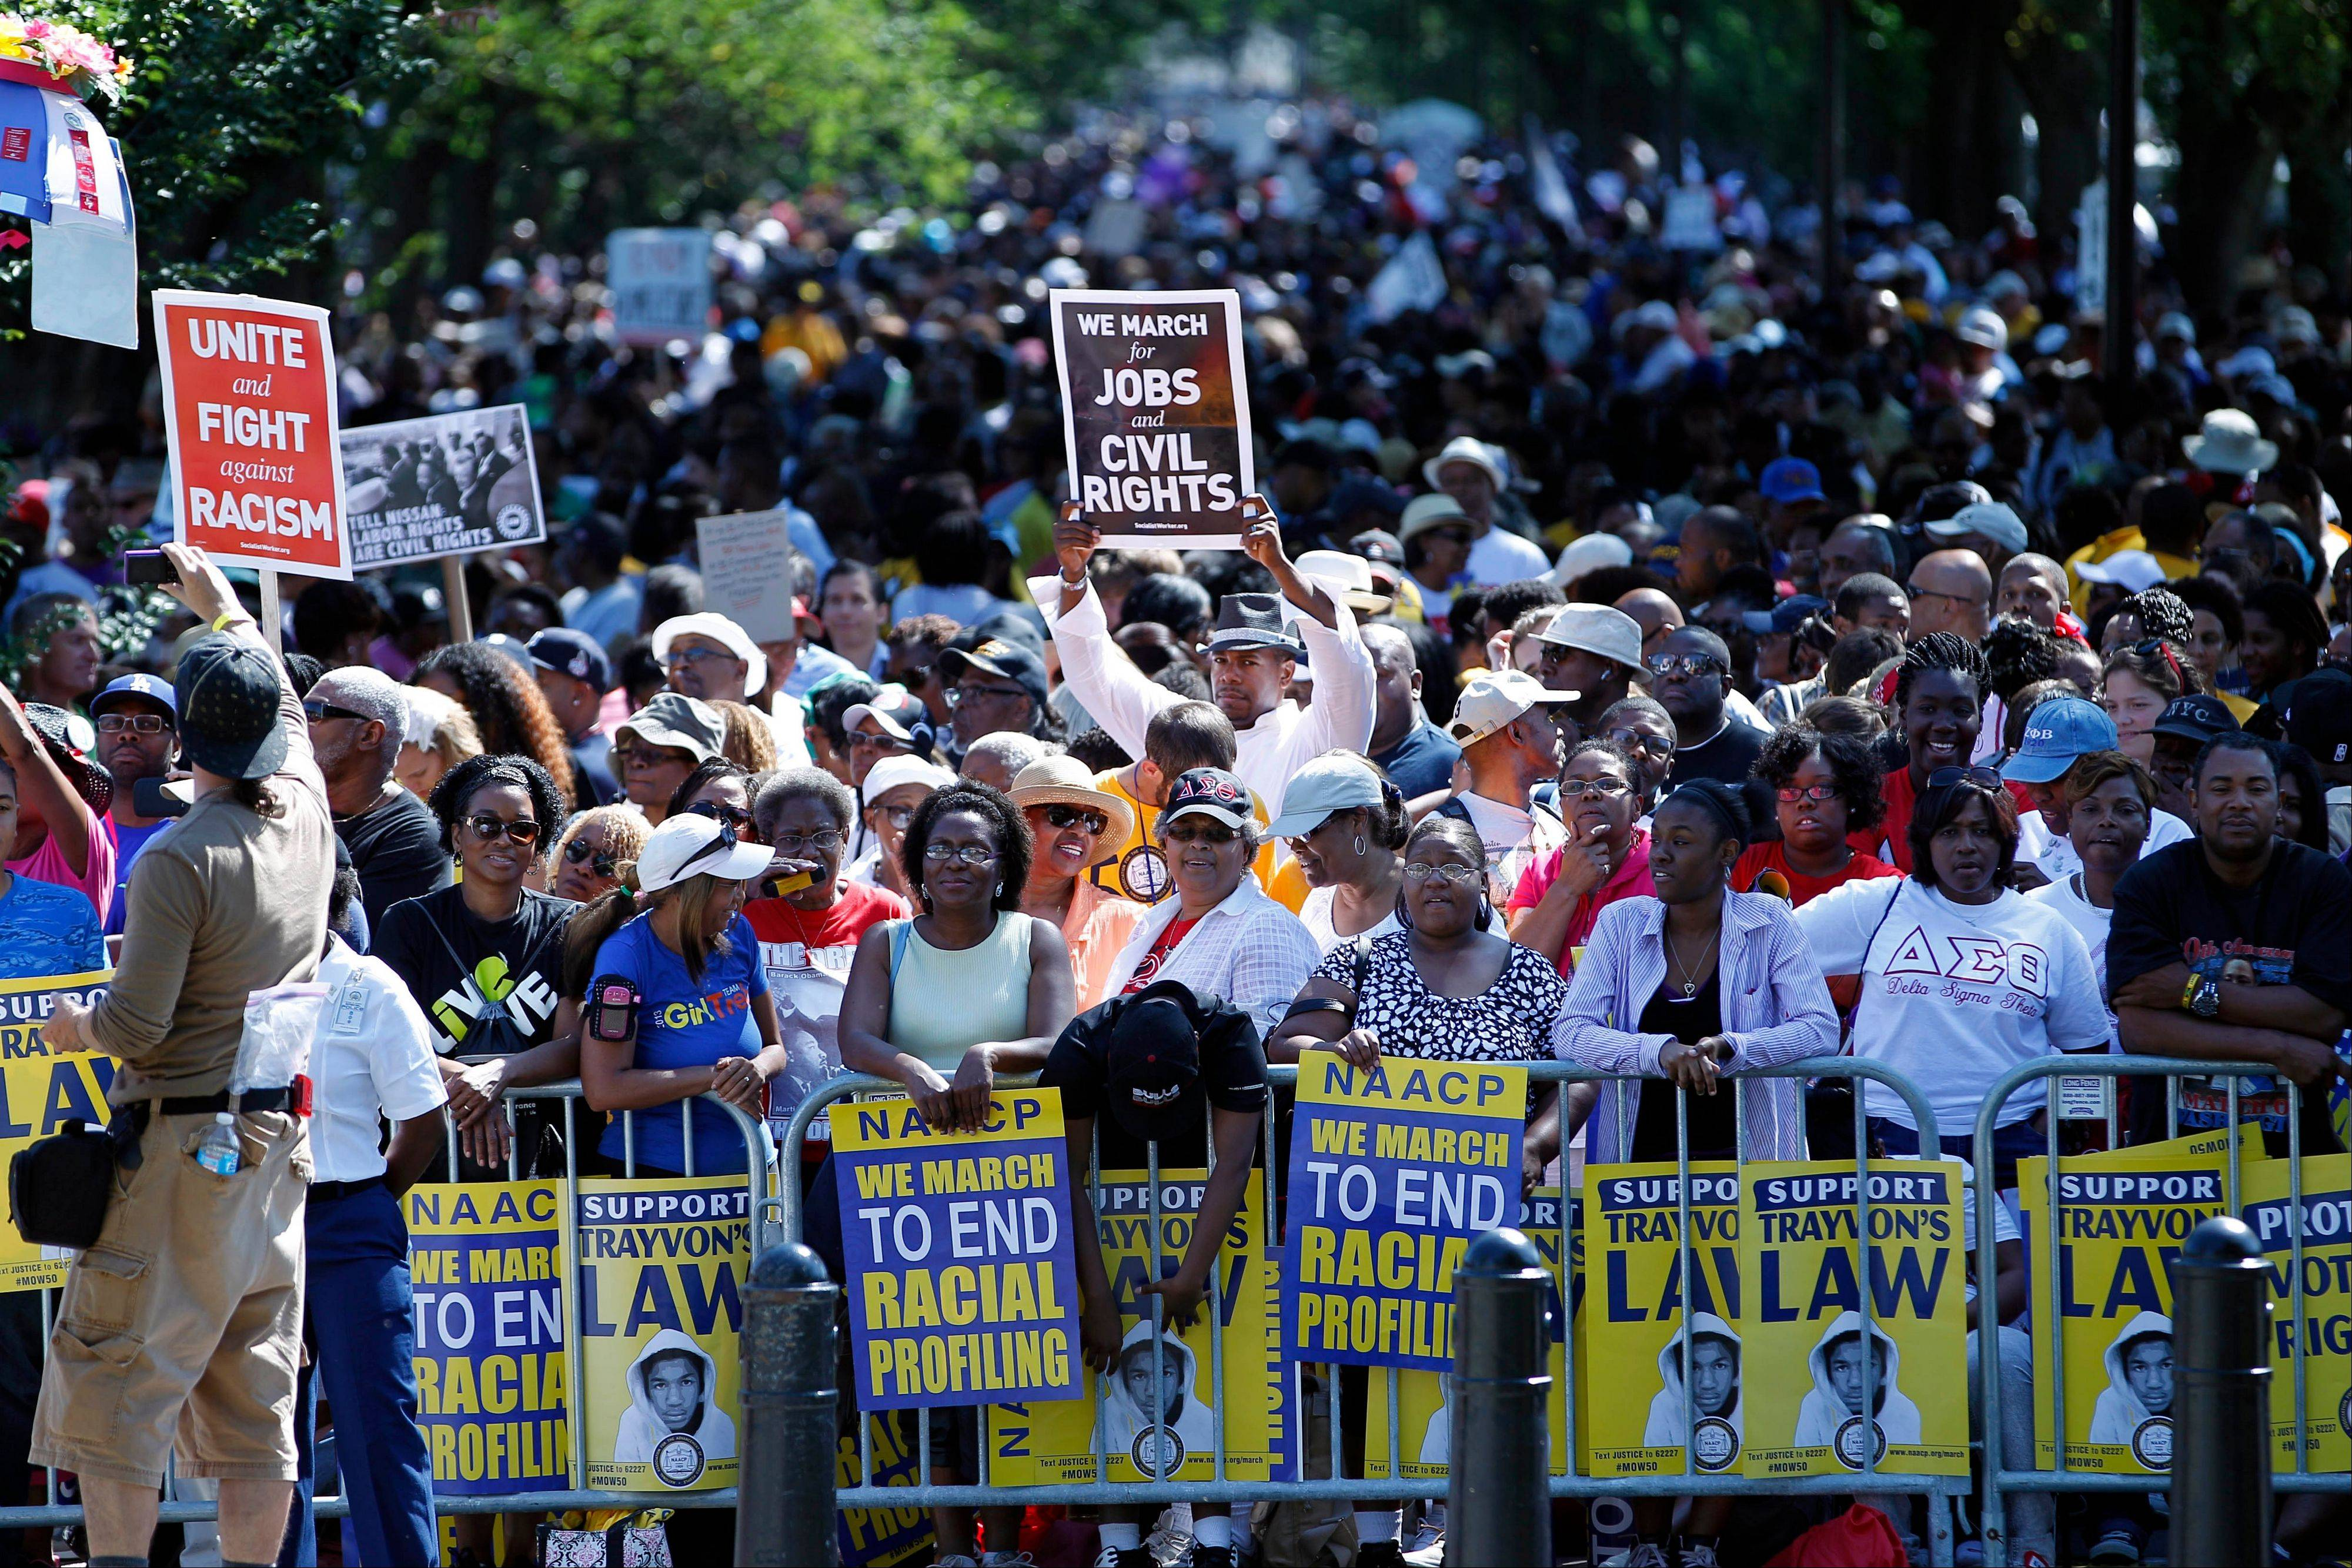 Crowds rally at the Lincoln Memorial Saturday in Washington to commemorate the 50th anniversary of the 1963 March on Washington.